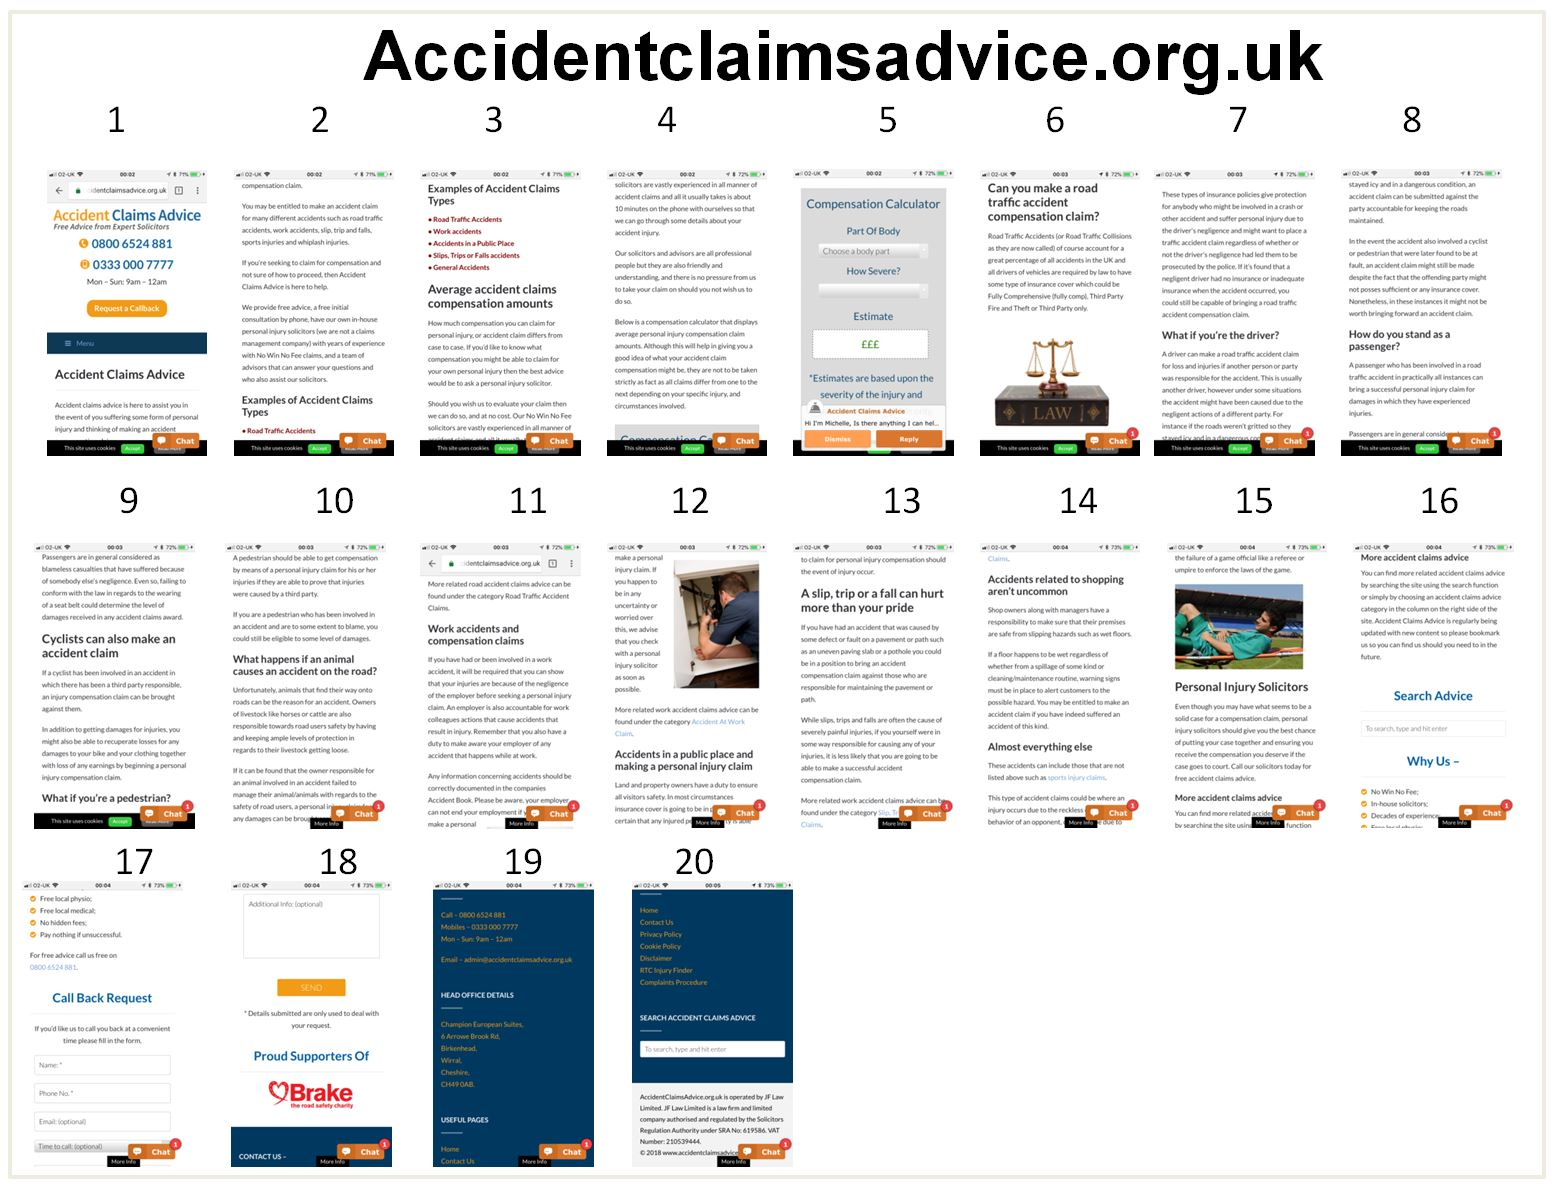 Image of accidentcliamsadvice.org.uk landing page